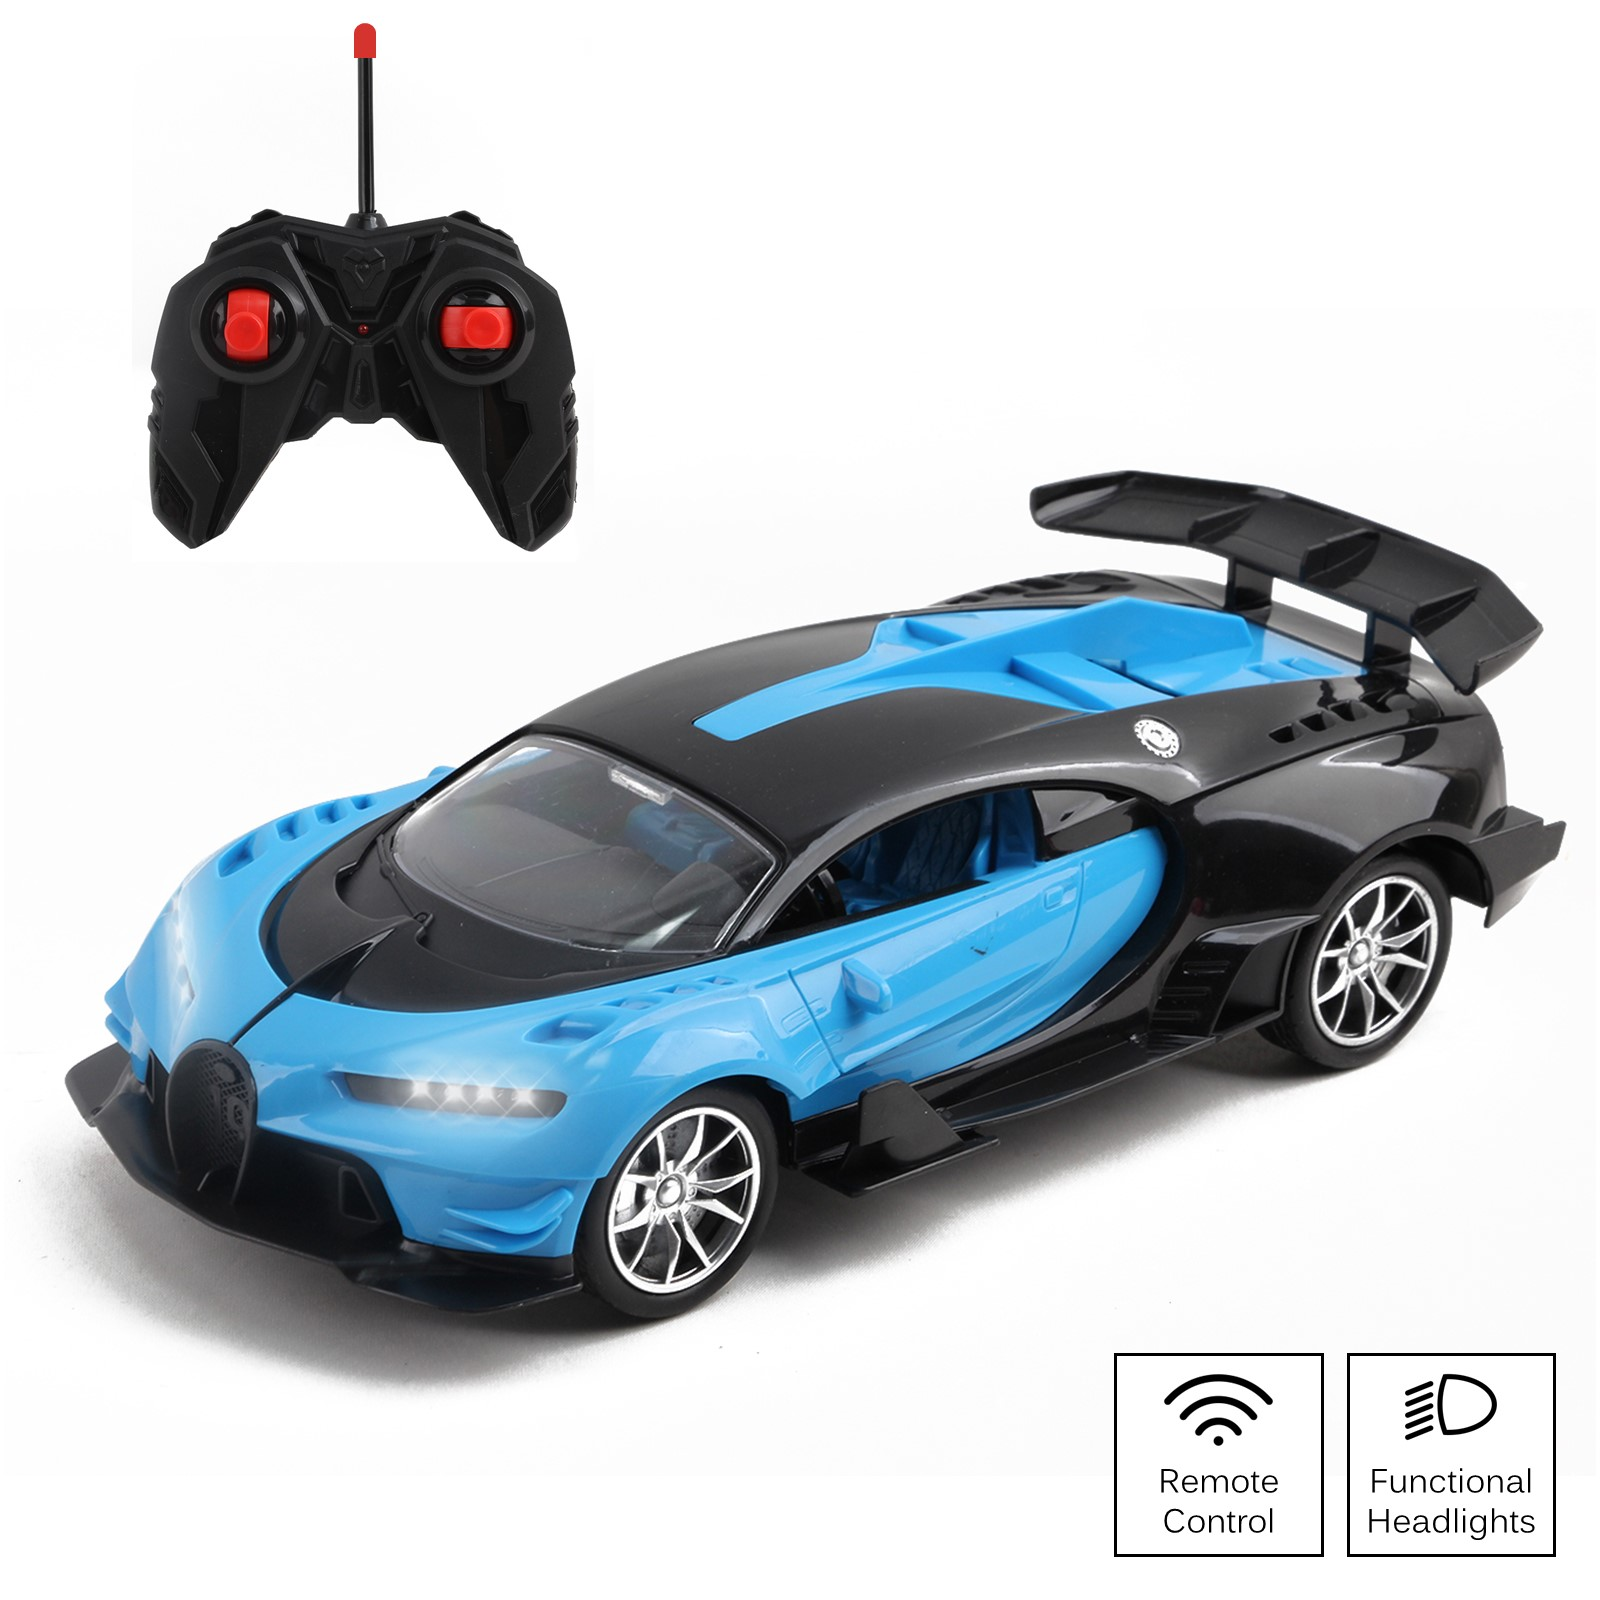 Vokodo RC Super Car 1:16 Scale Remote Control Full Function with Functional LED Headlights Easy to Operate Kids Toy Quality Race Vehicle Perfect Exotic Sports Model Great Gift for Children Boys Girls